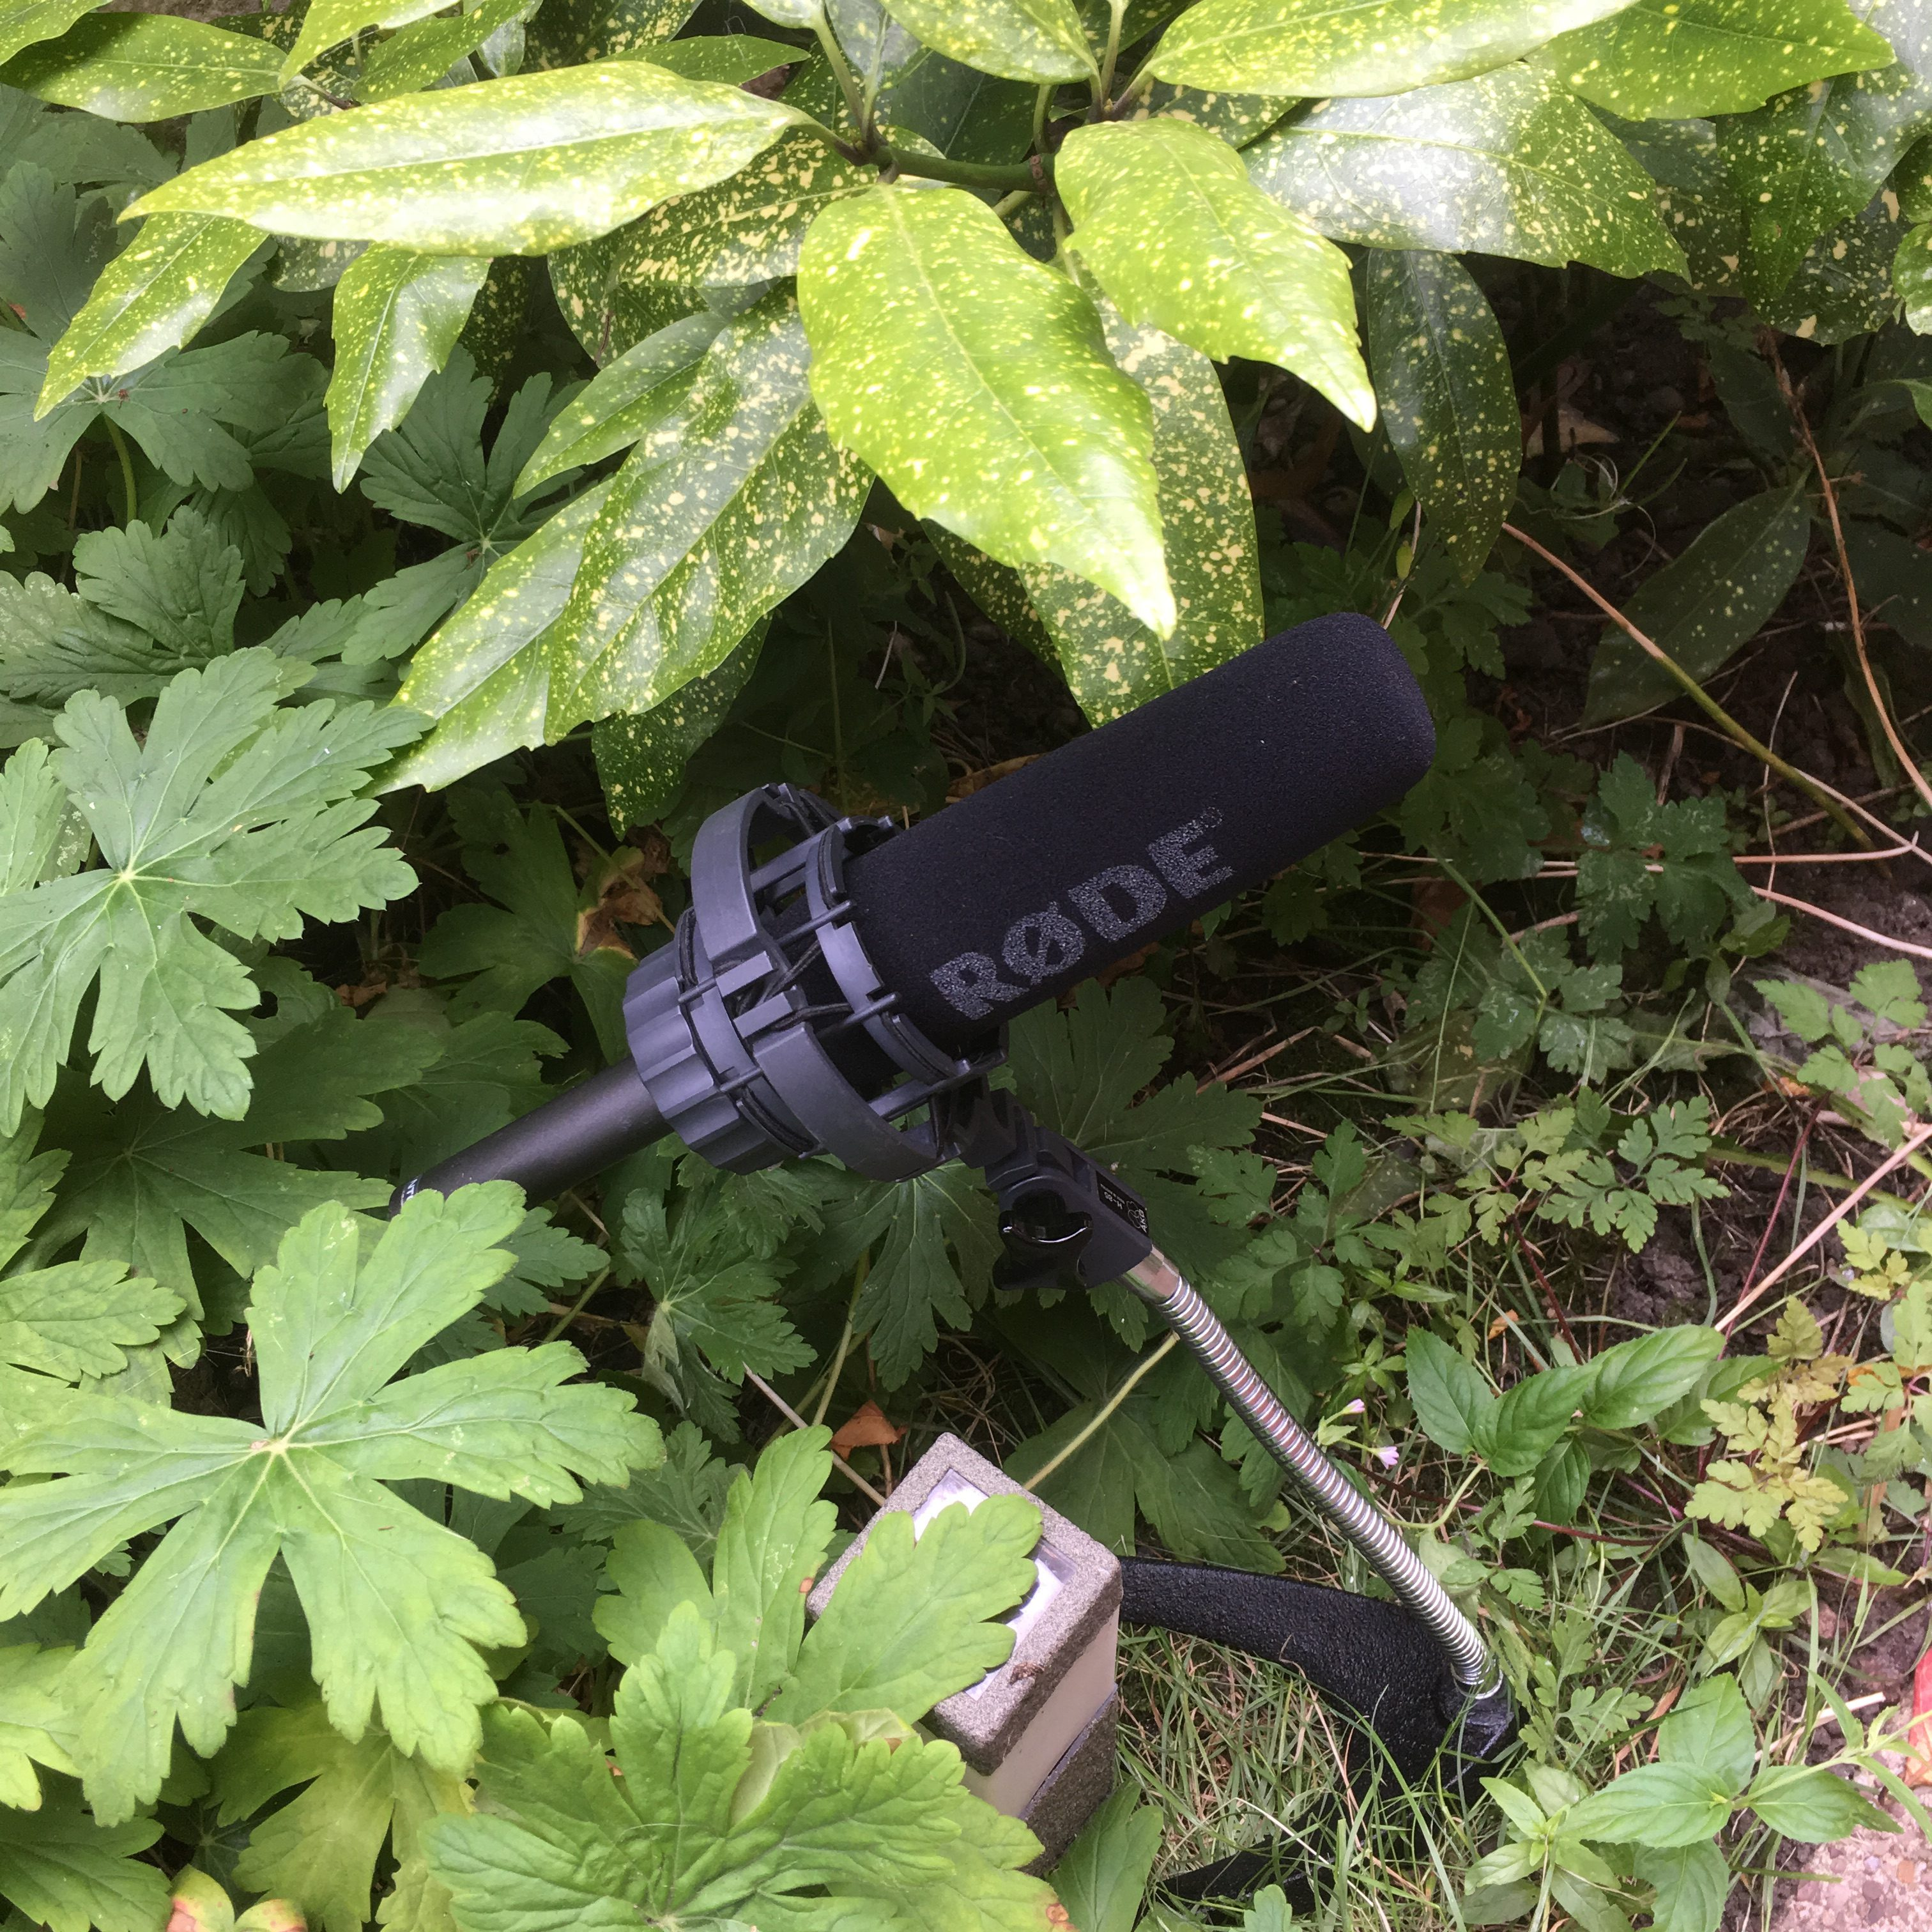 Microphone in a Bush - Junction 6 - .chis